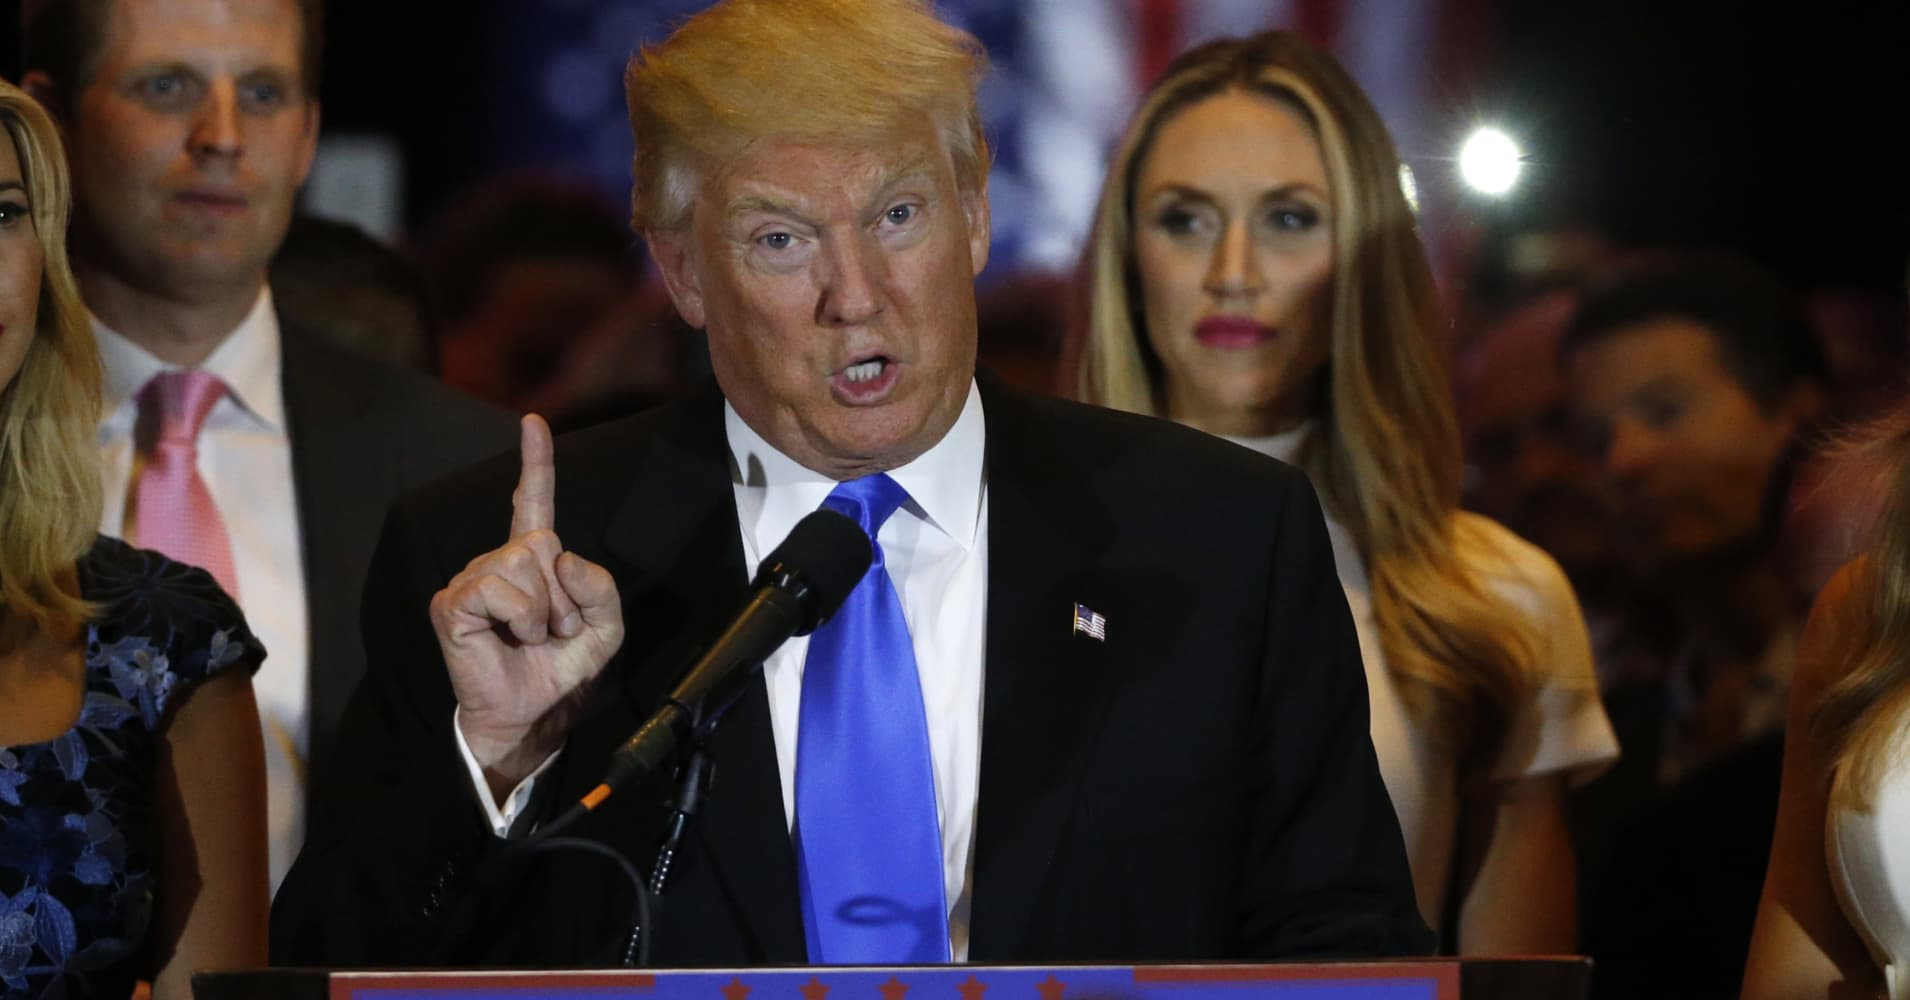 GOP Front-Runner Donald Trump Signals Willingness to Raise US Minimum Wage